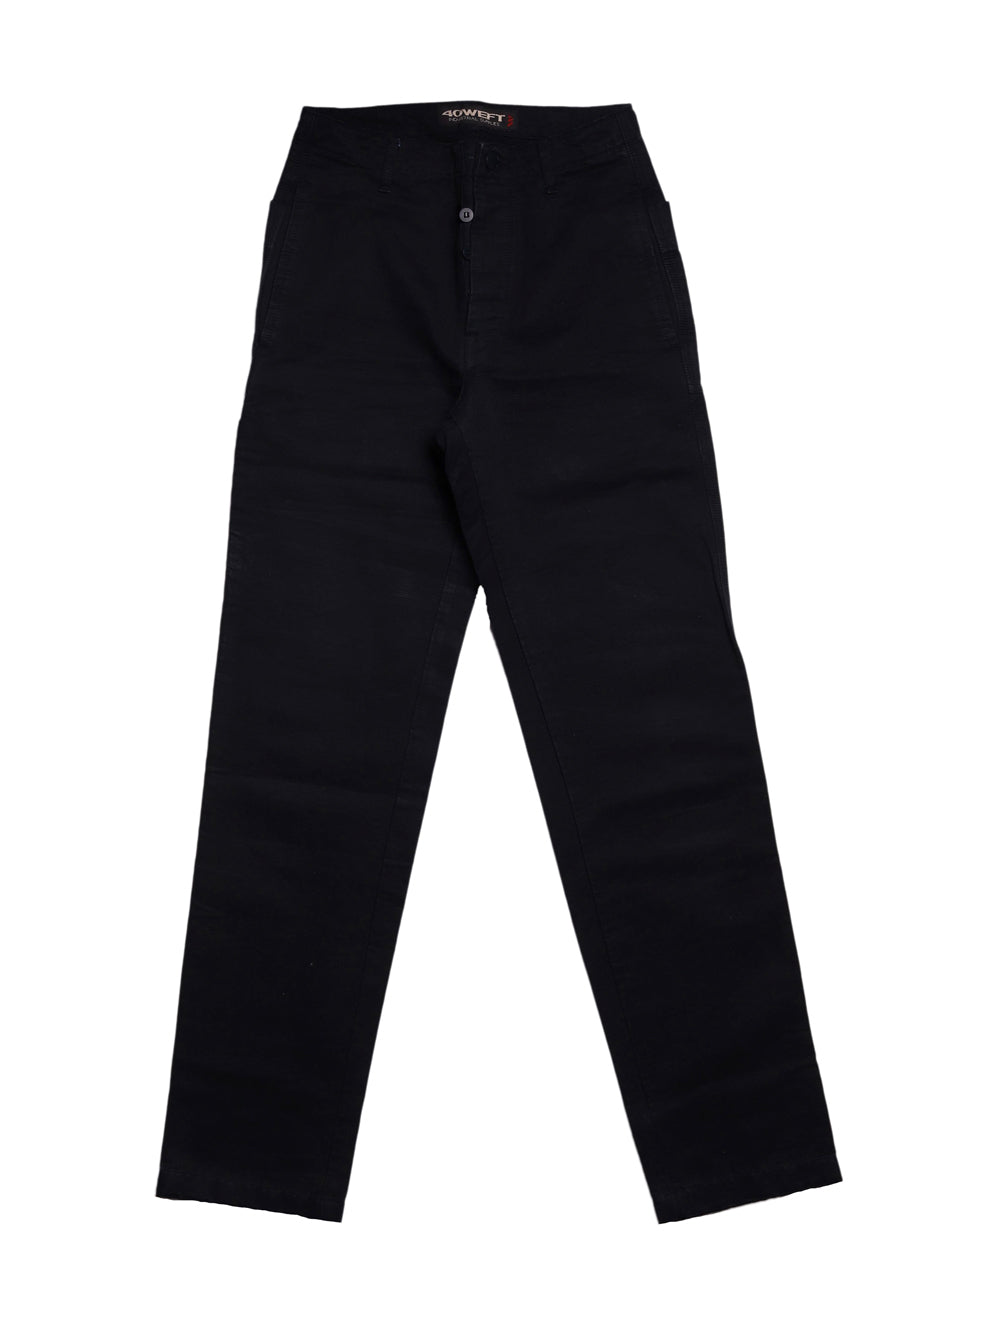 Front photo of Preloved 40 Weft Black Man's trousers - size 32/XXS